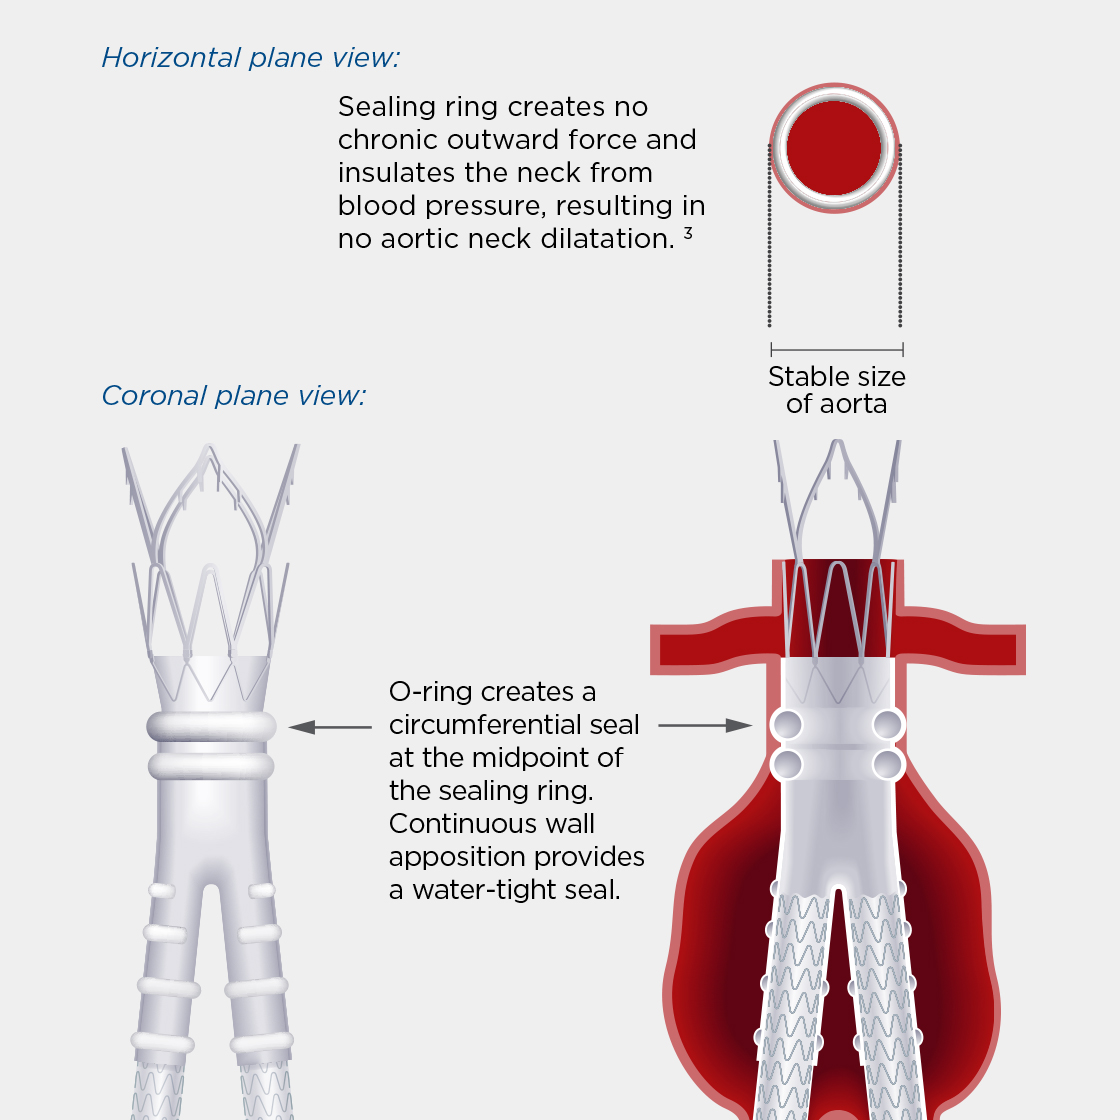 Ovation Abdominal Stent Graft